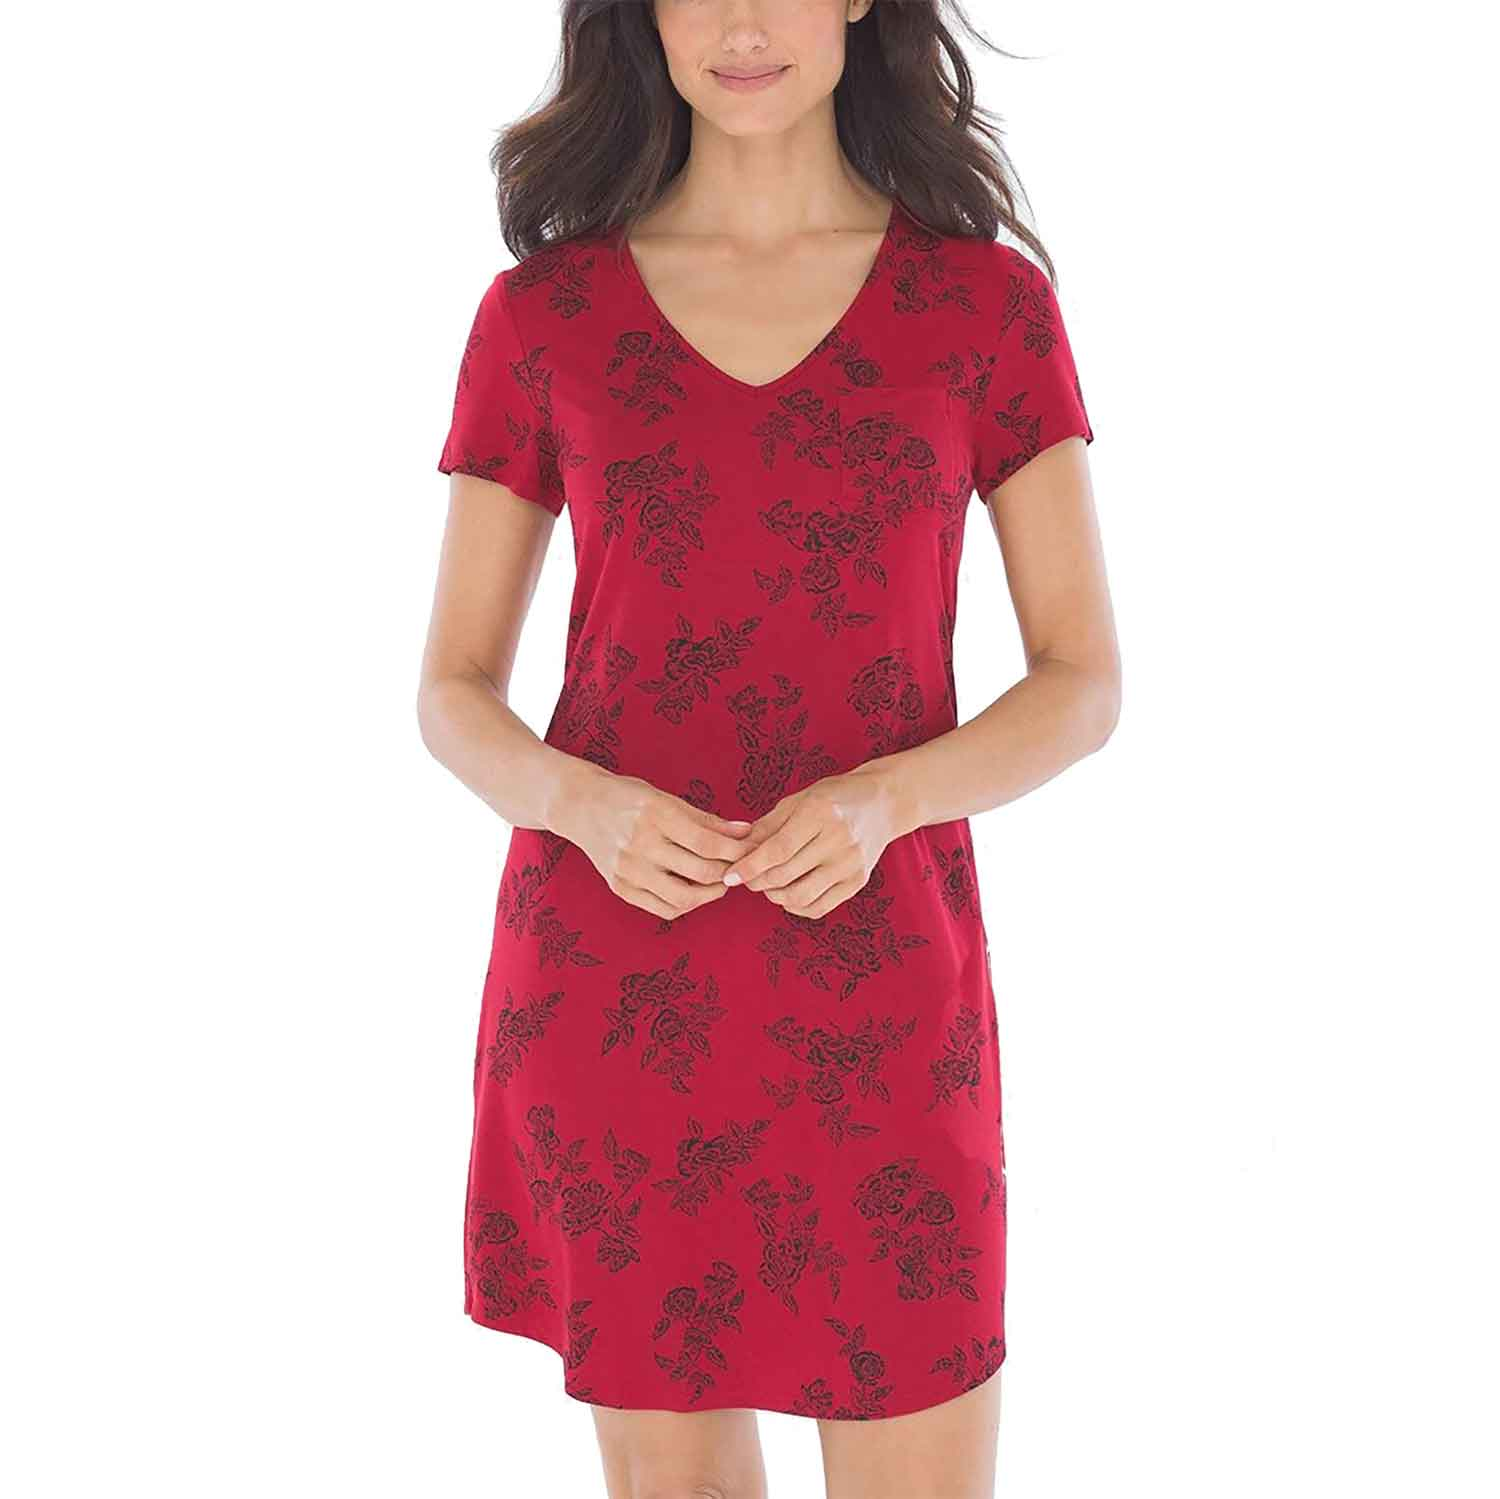 Cool Nights Short Sleeve Sleepshirt Lace Floral Red